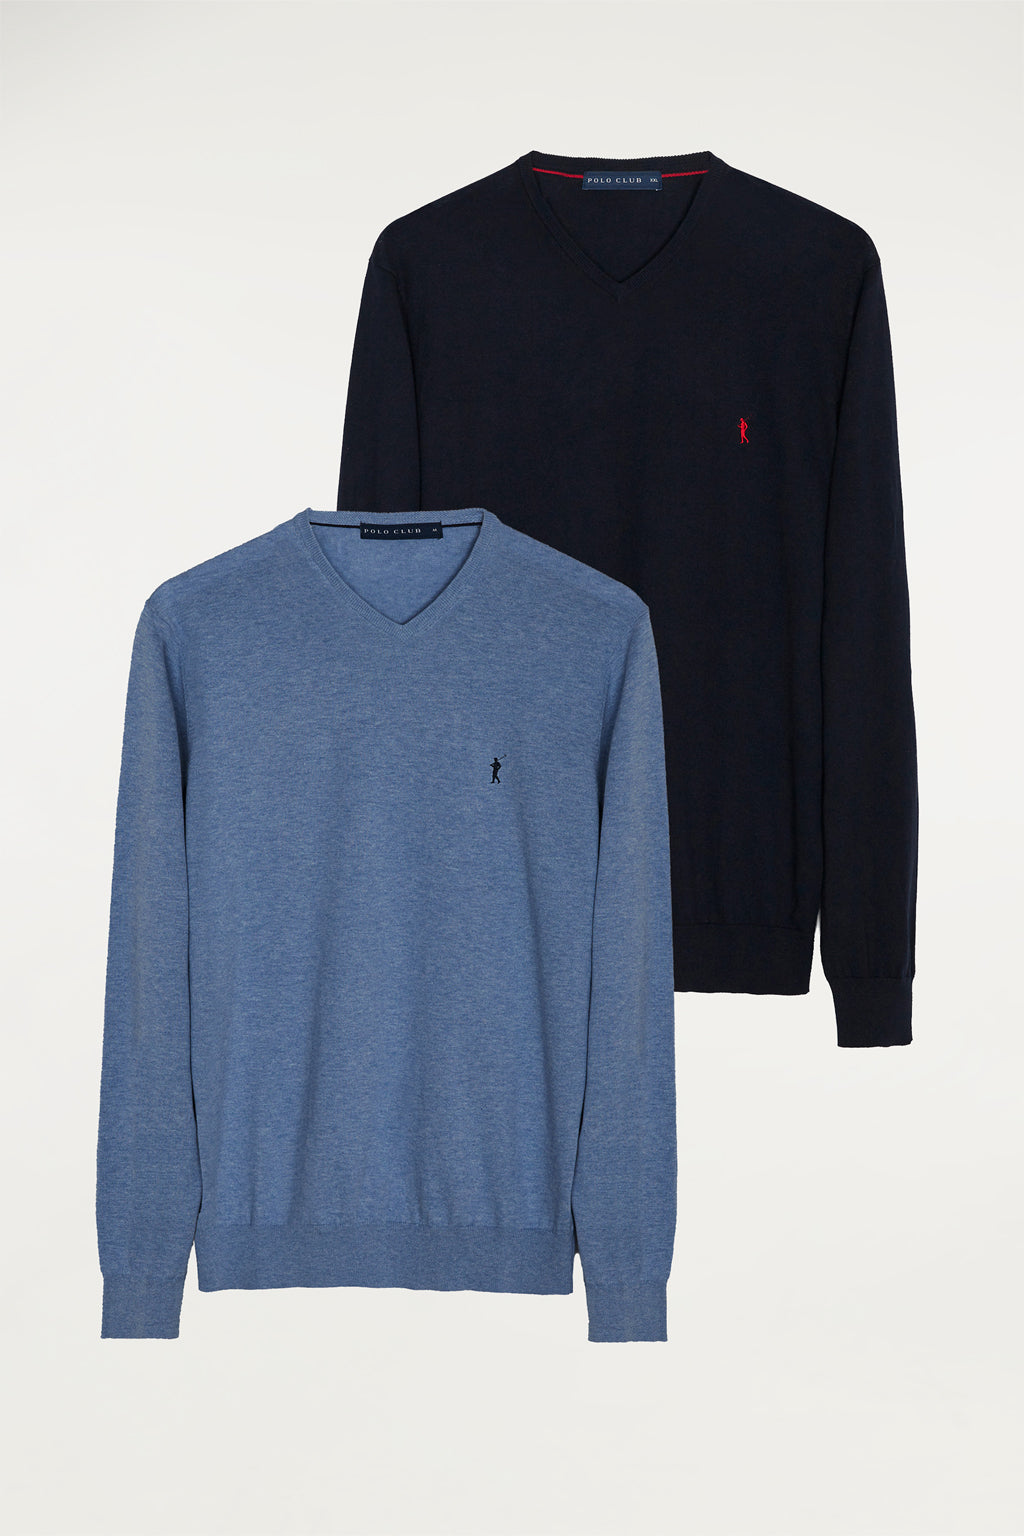 Pack of two black and denim jumpers with v-neck